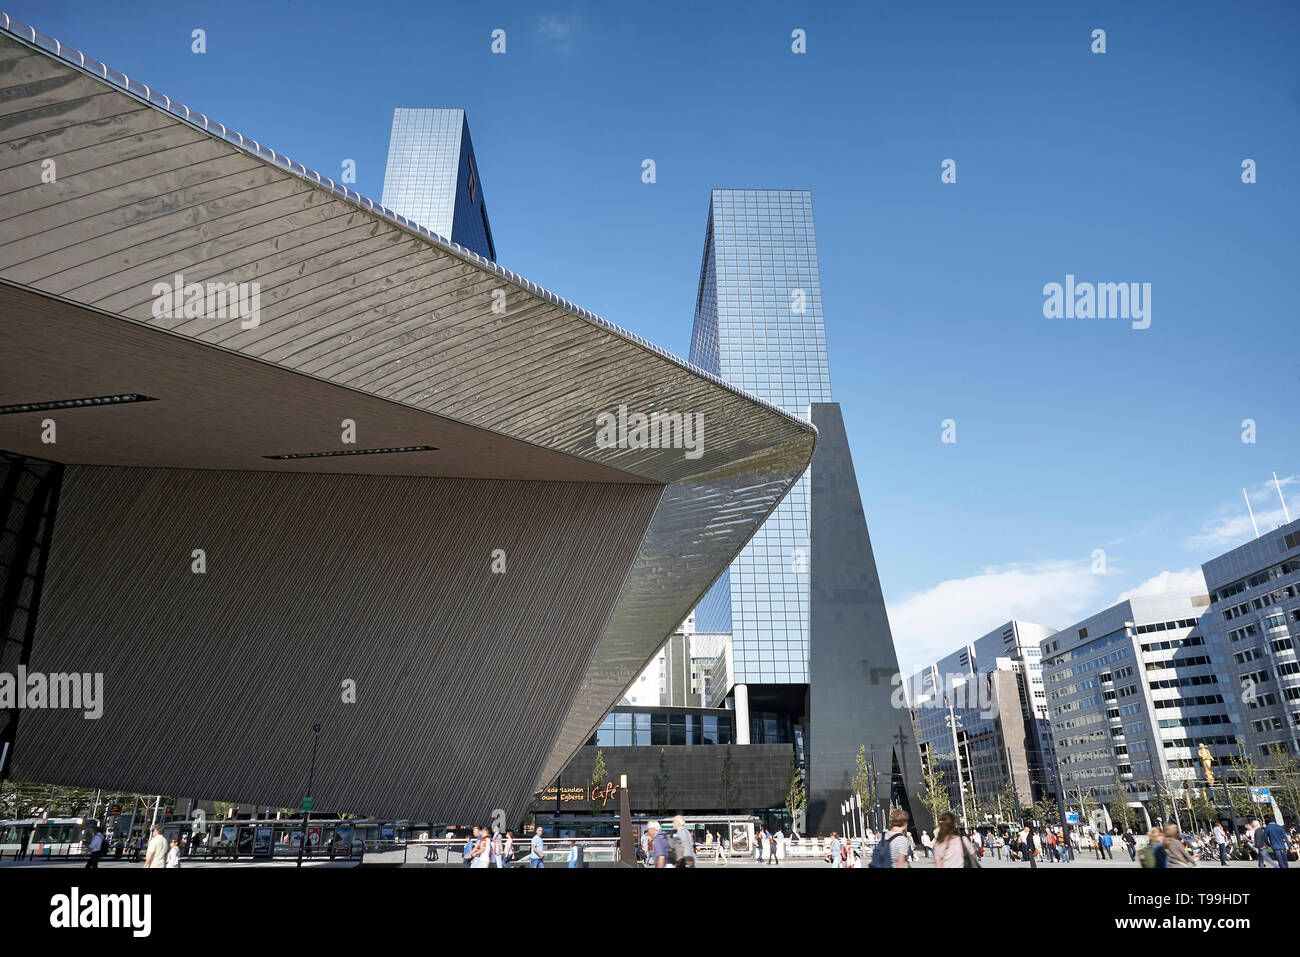 Amazing image of the new central train station in the city centre of Rotterdam - Stock Image